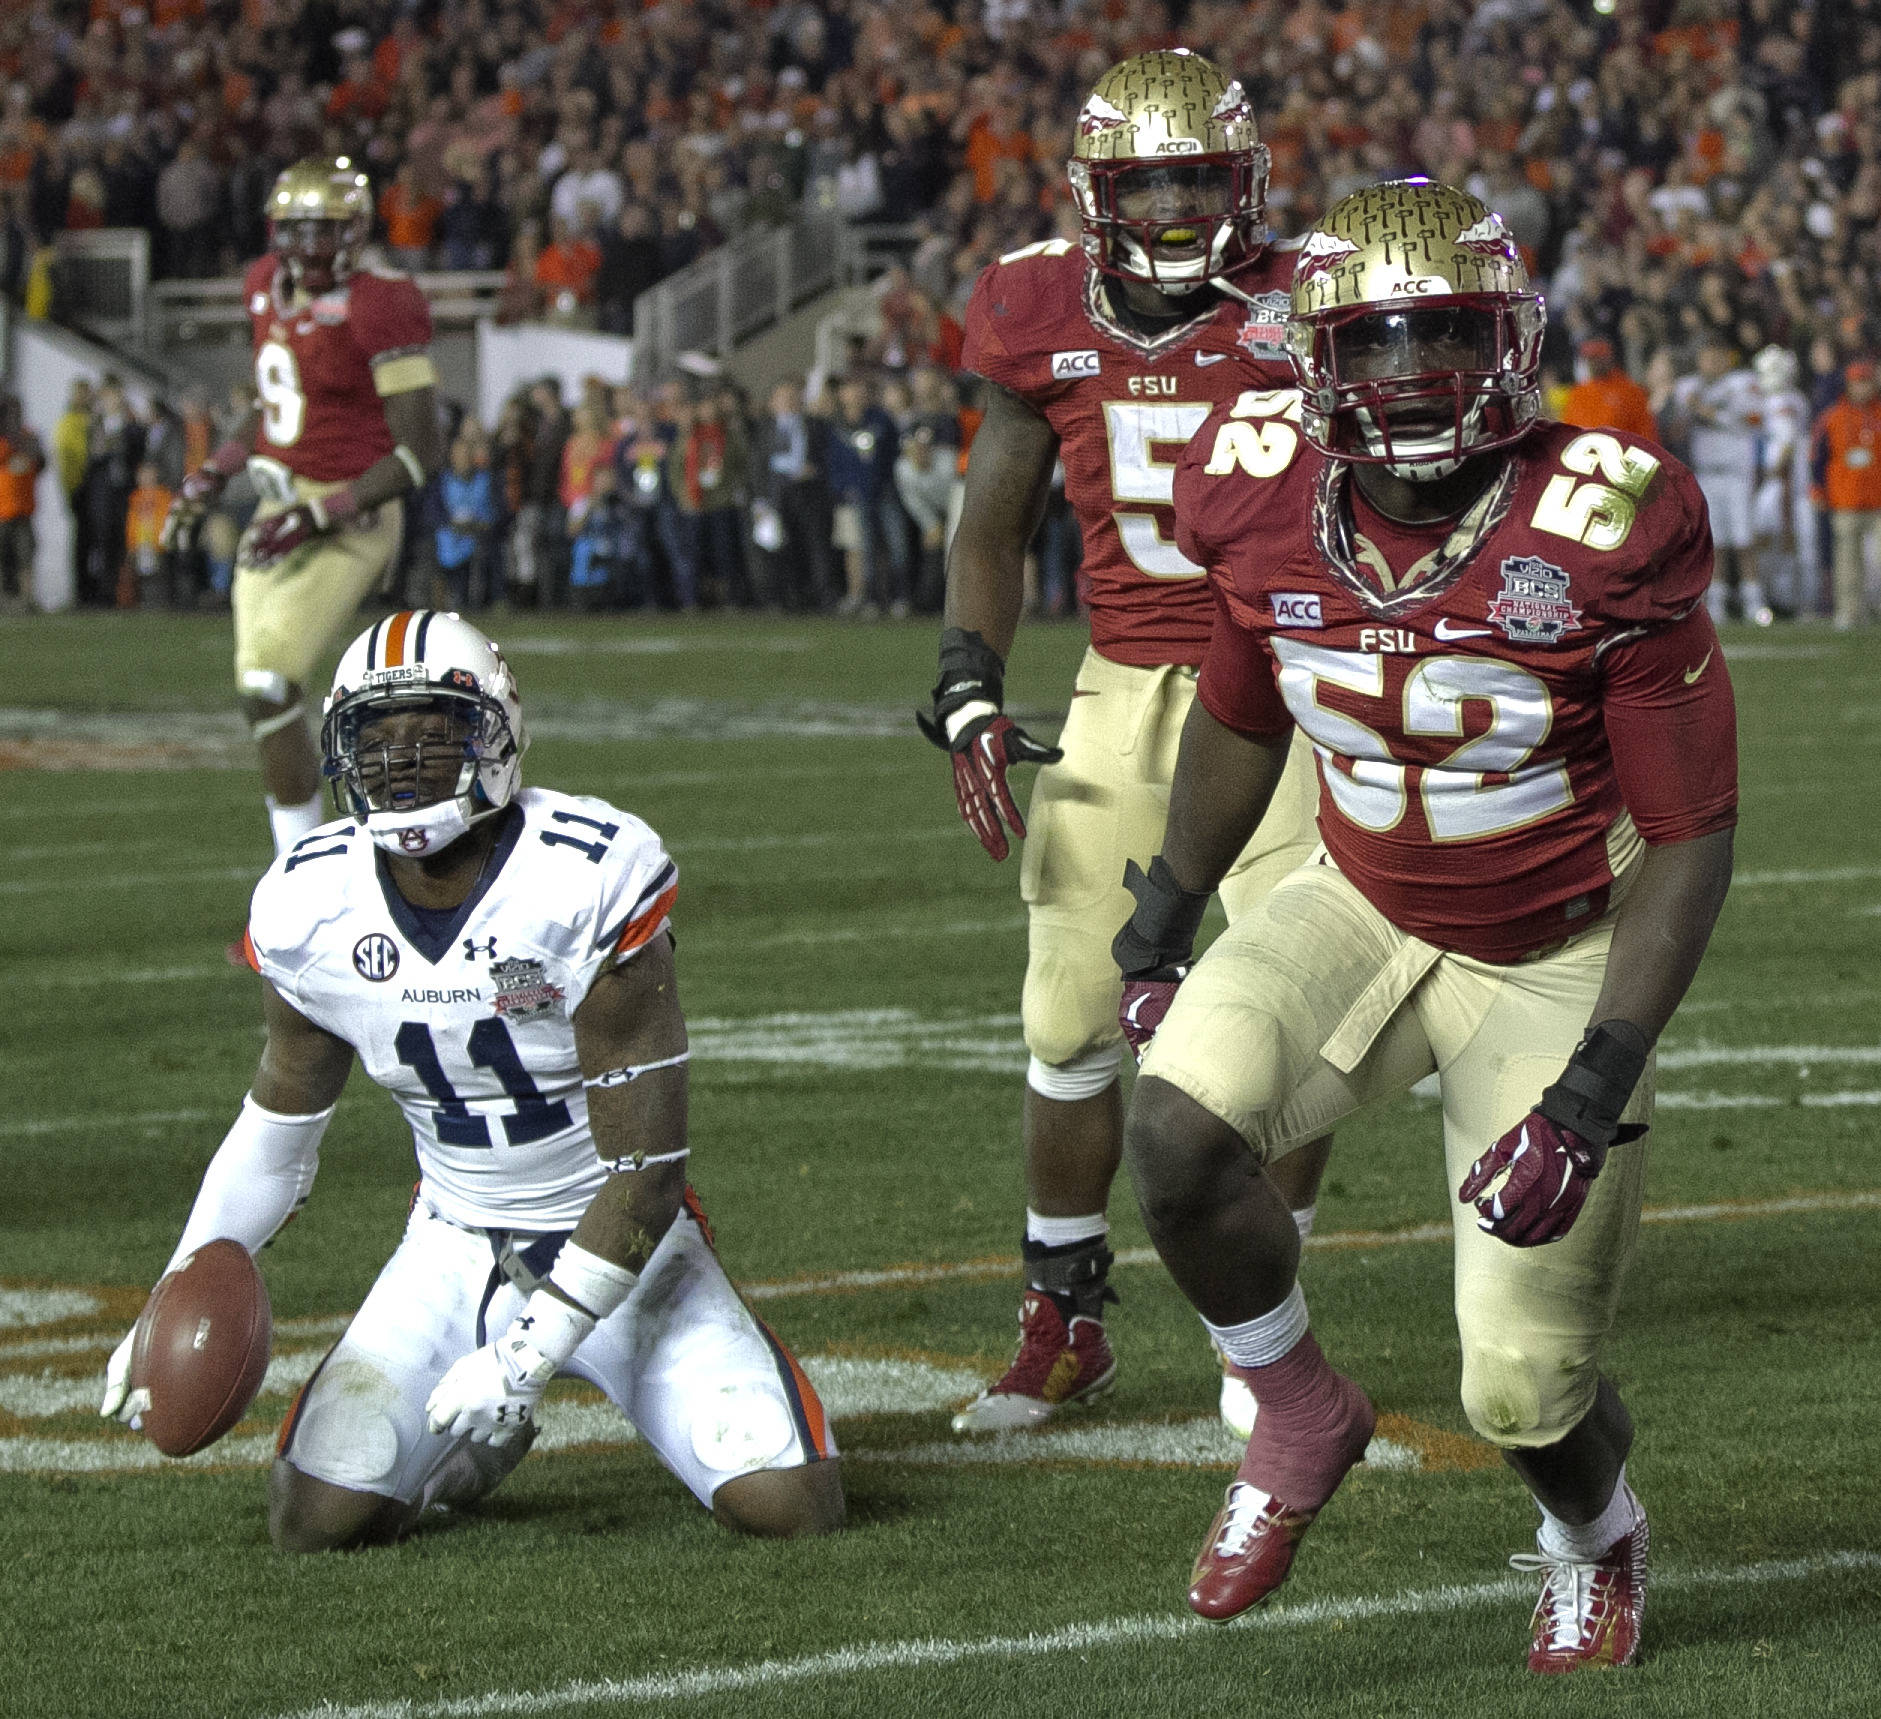 Ukeme Eligwe (52) with a stop on the second to last play, BCS Championship, FSU vs Auburn, Rose Bowl, Pasadena, CA,  1-06-14,  (Photo by Steve Musco)